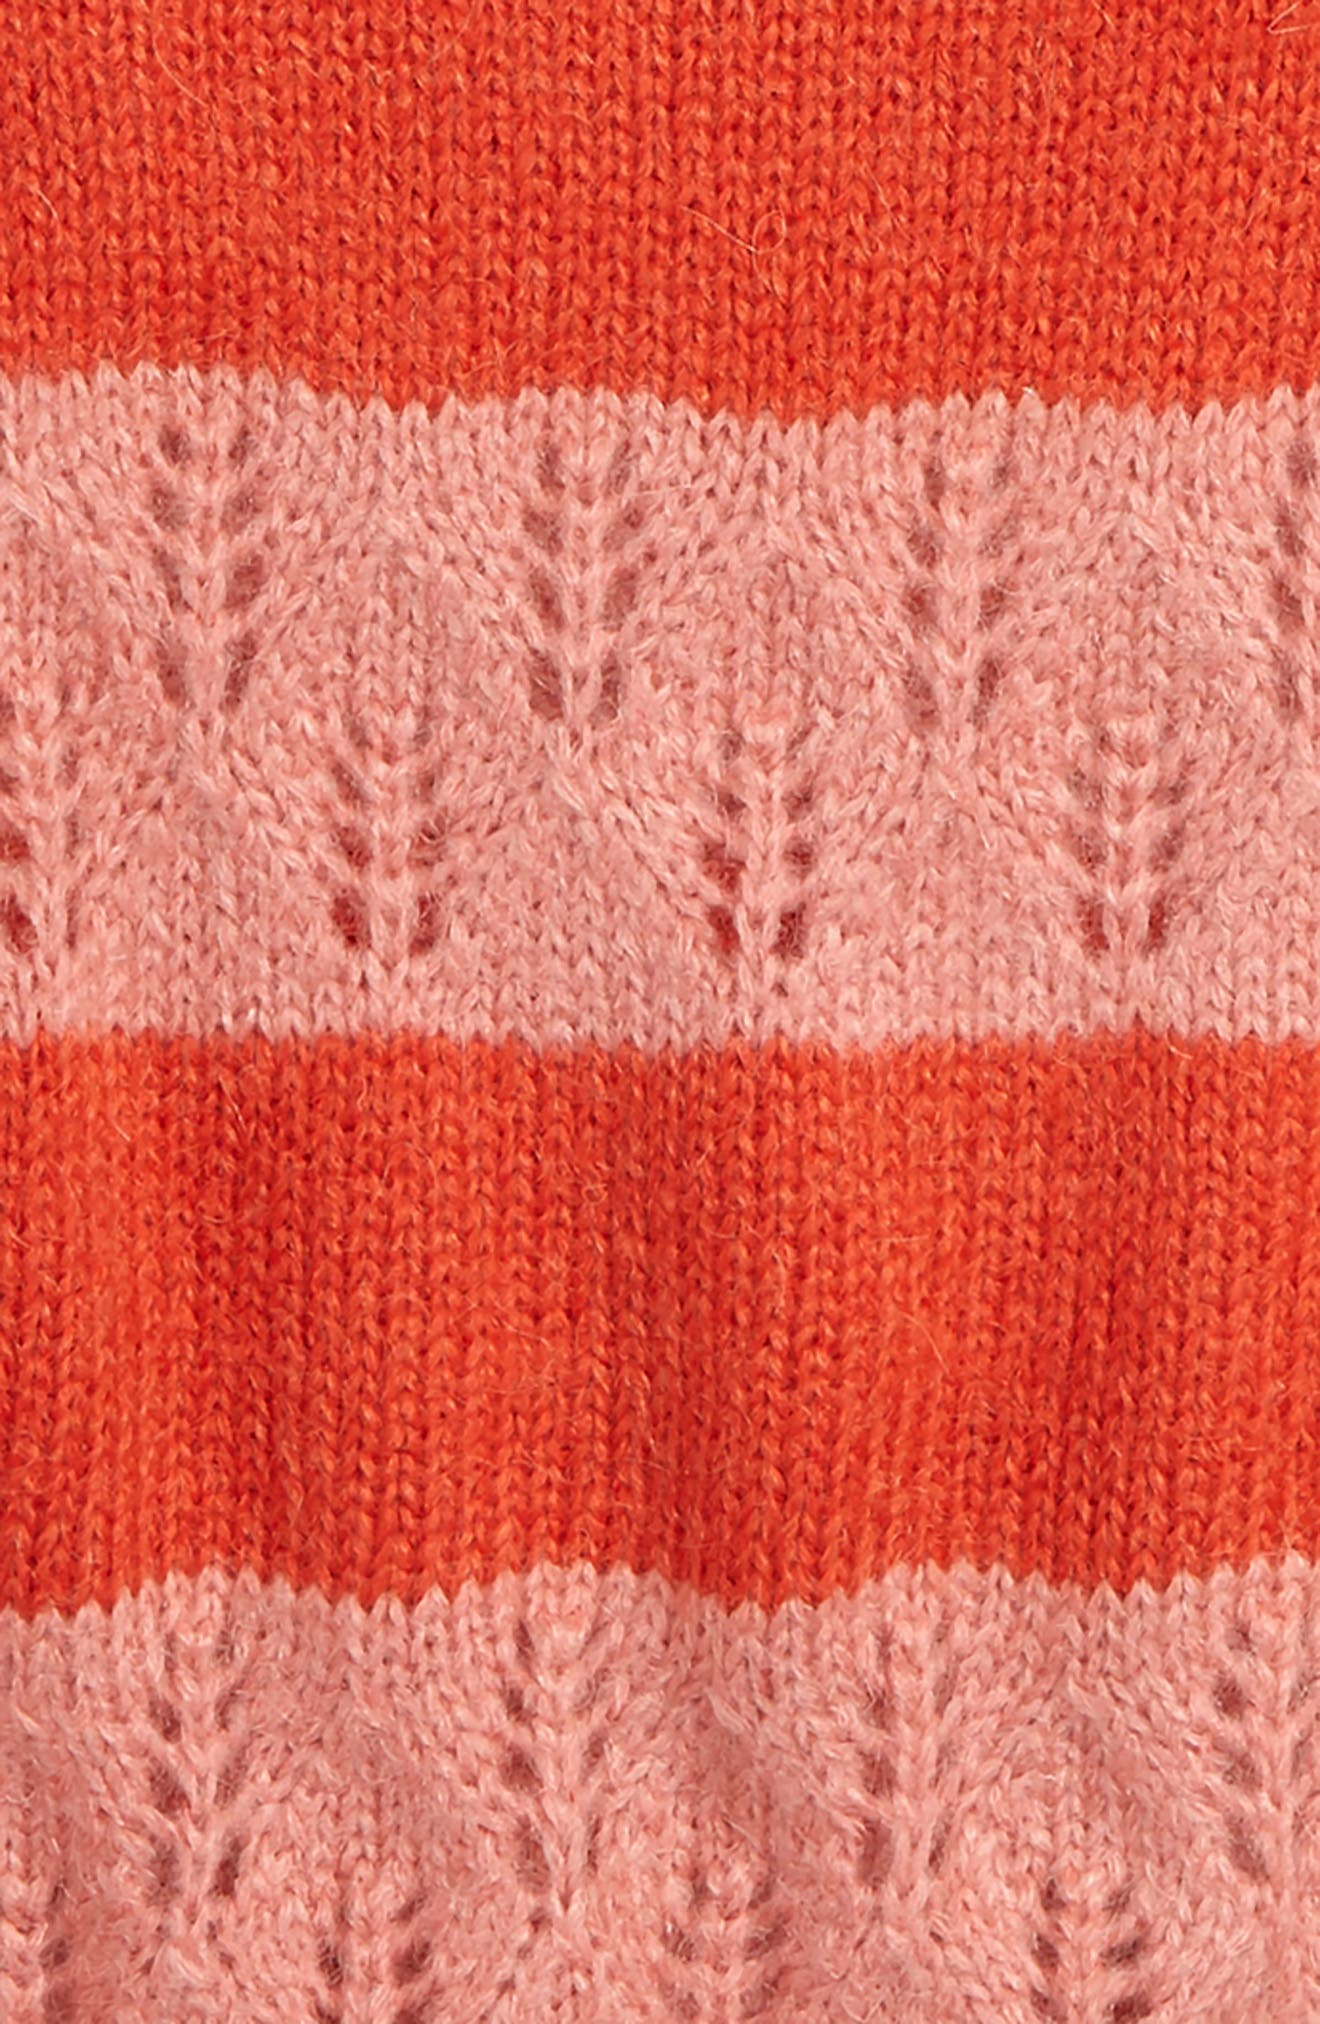 Stripe Knit Sweater,                             Alternate thumbnail 2, color,                             POPPY RED/ FORMICA PINK